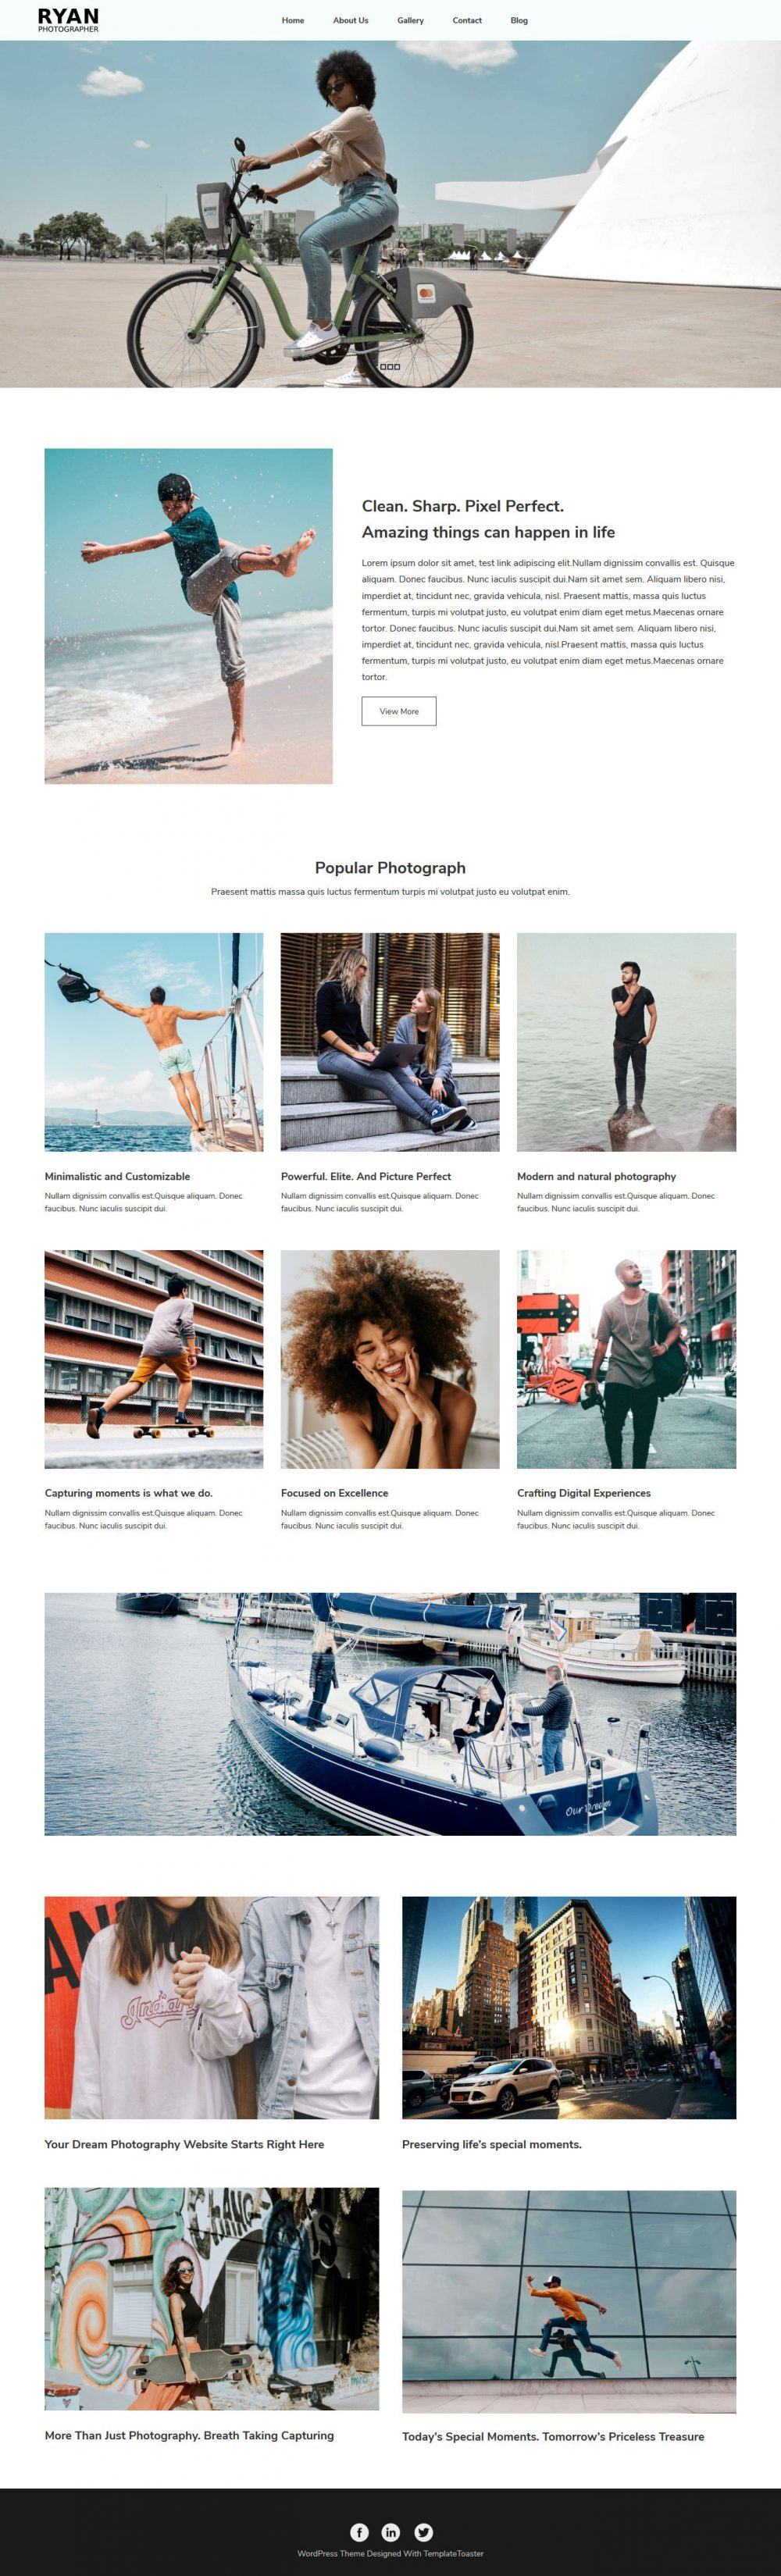 Ryan Photographer Blogger Template